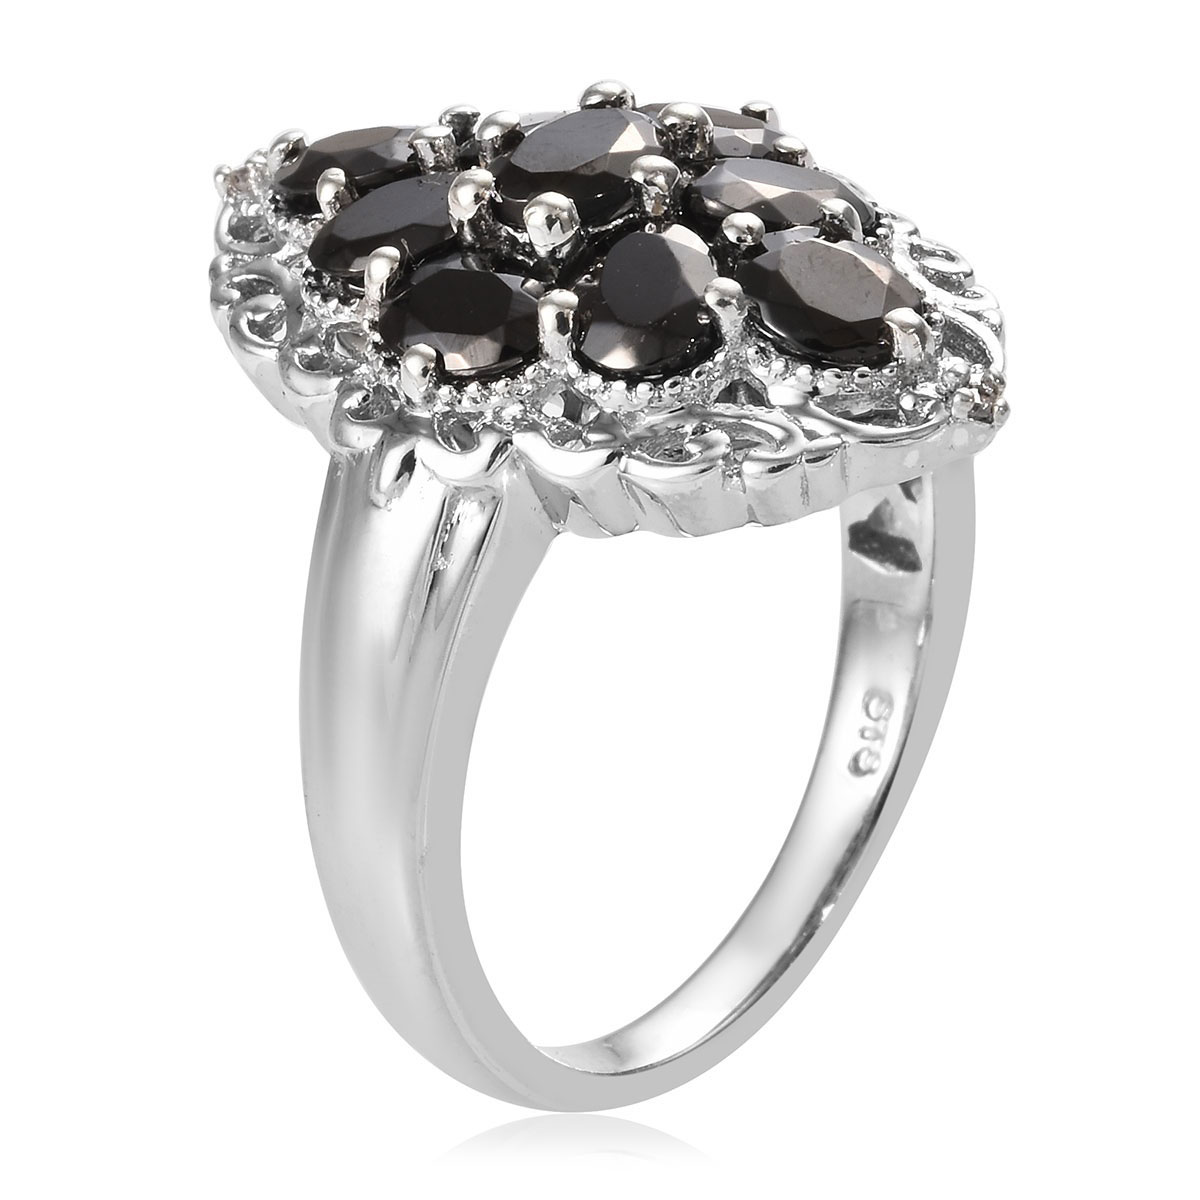 Shungite, Zircon Ring in Platinum Over Sterling Silver (Size 8.0) 2.03 ctw